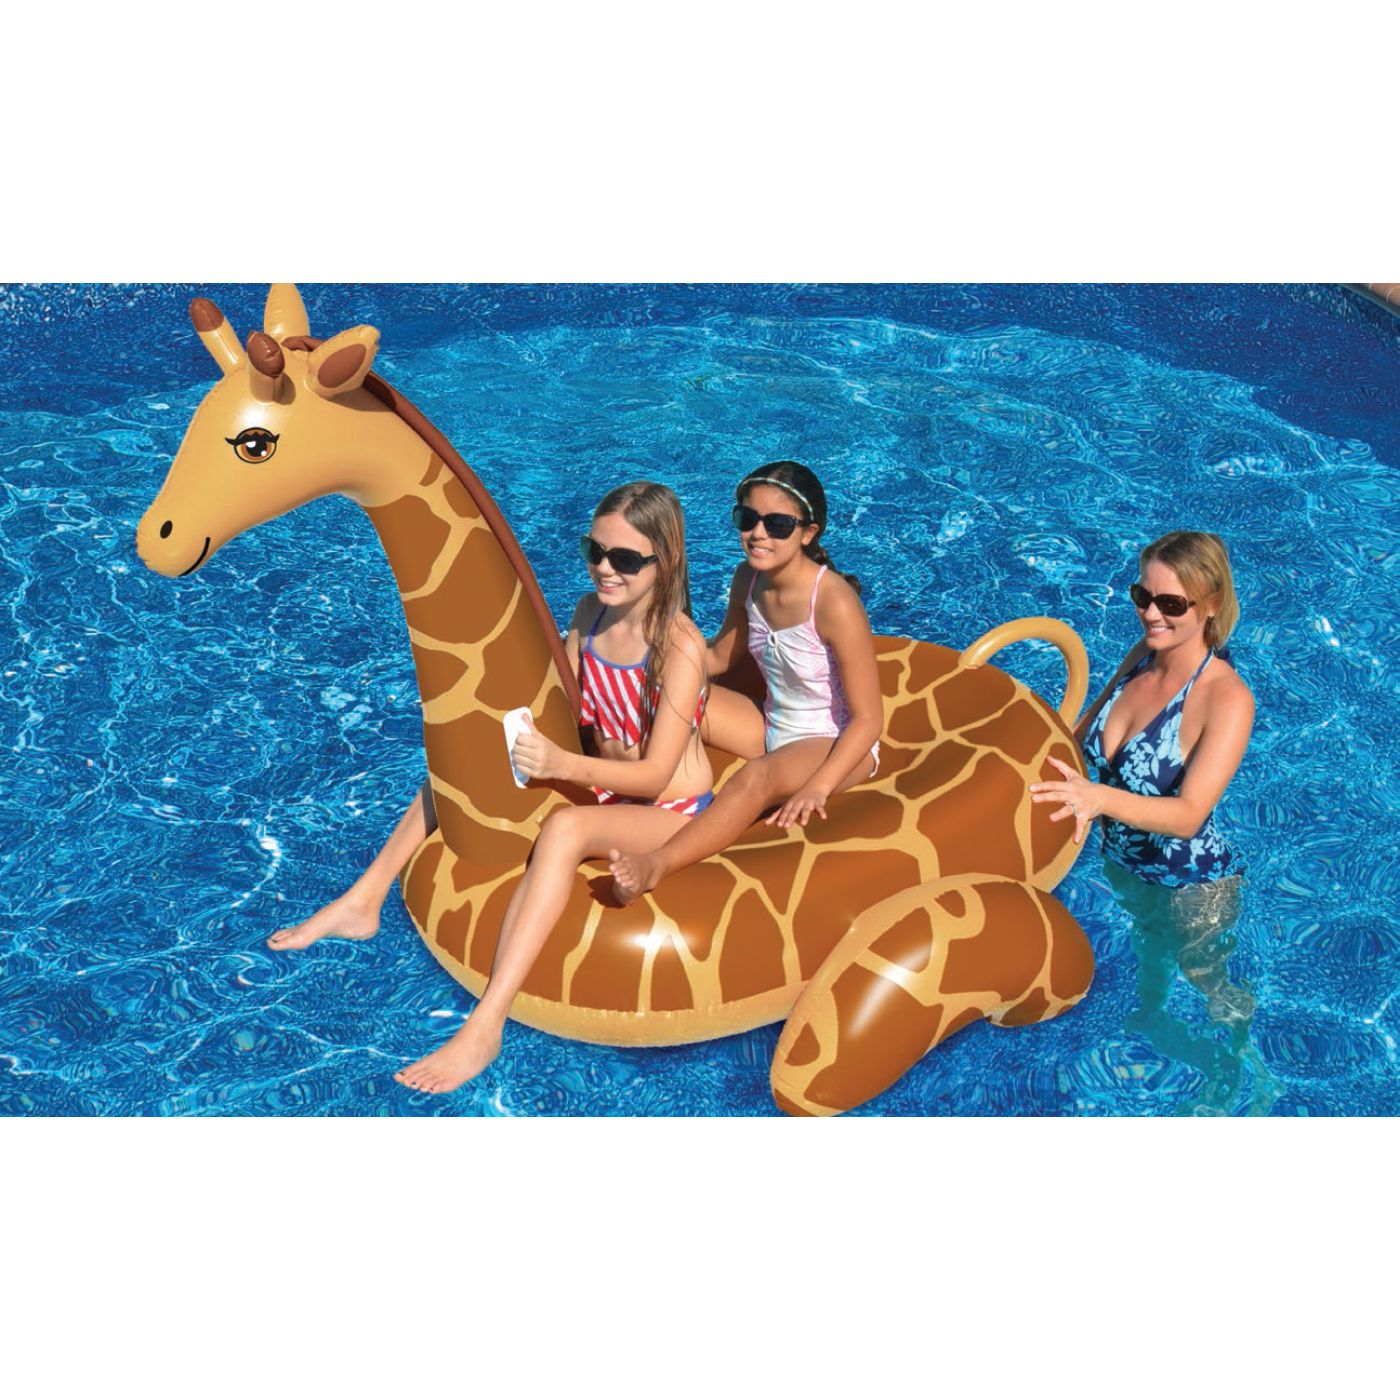 Water Sports Inflatable Giant Giraffe Swimming Pool Ride On Lounger Image 3  Of 3